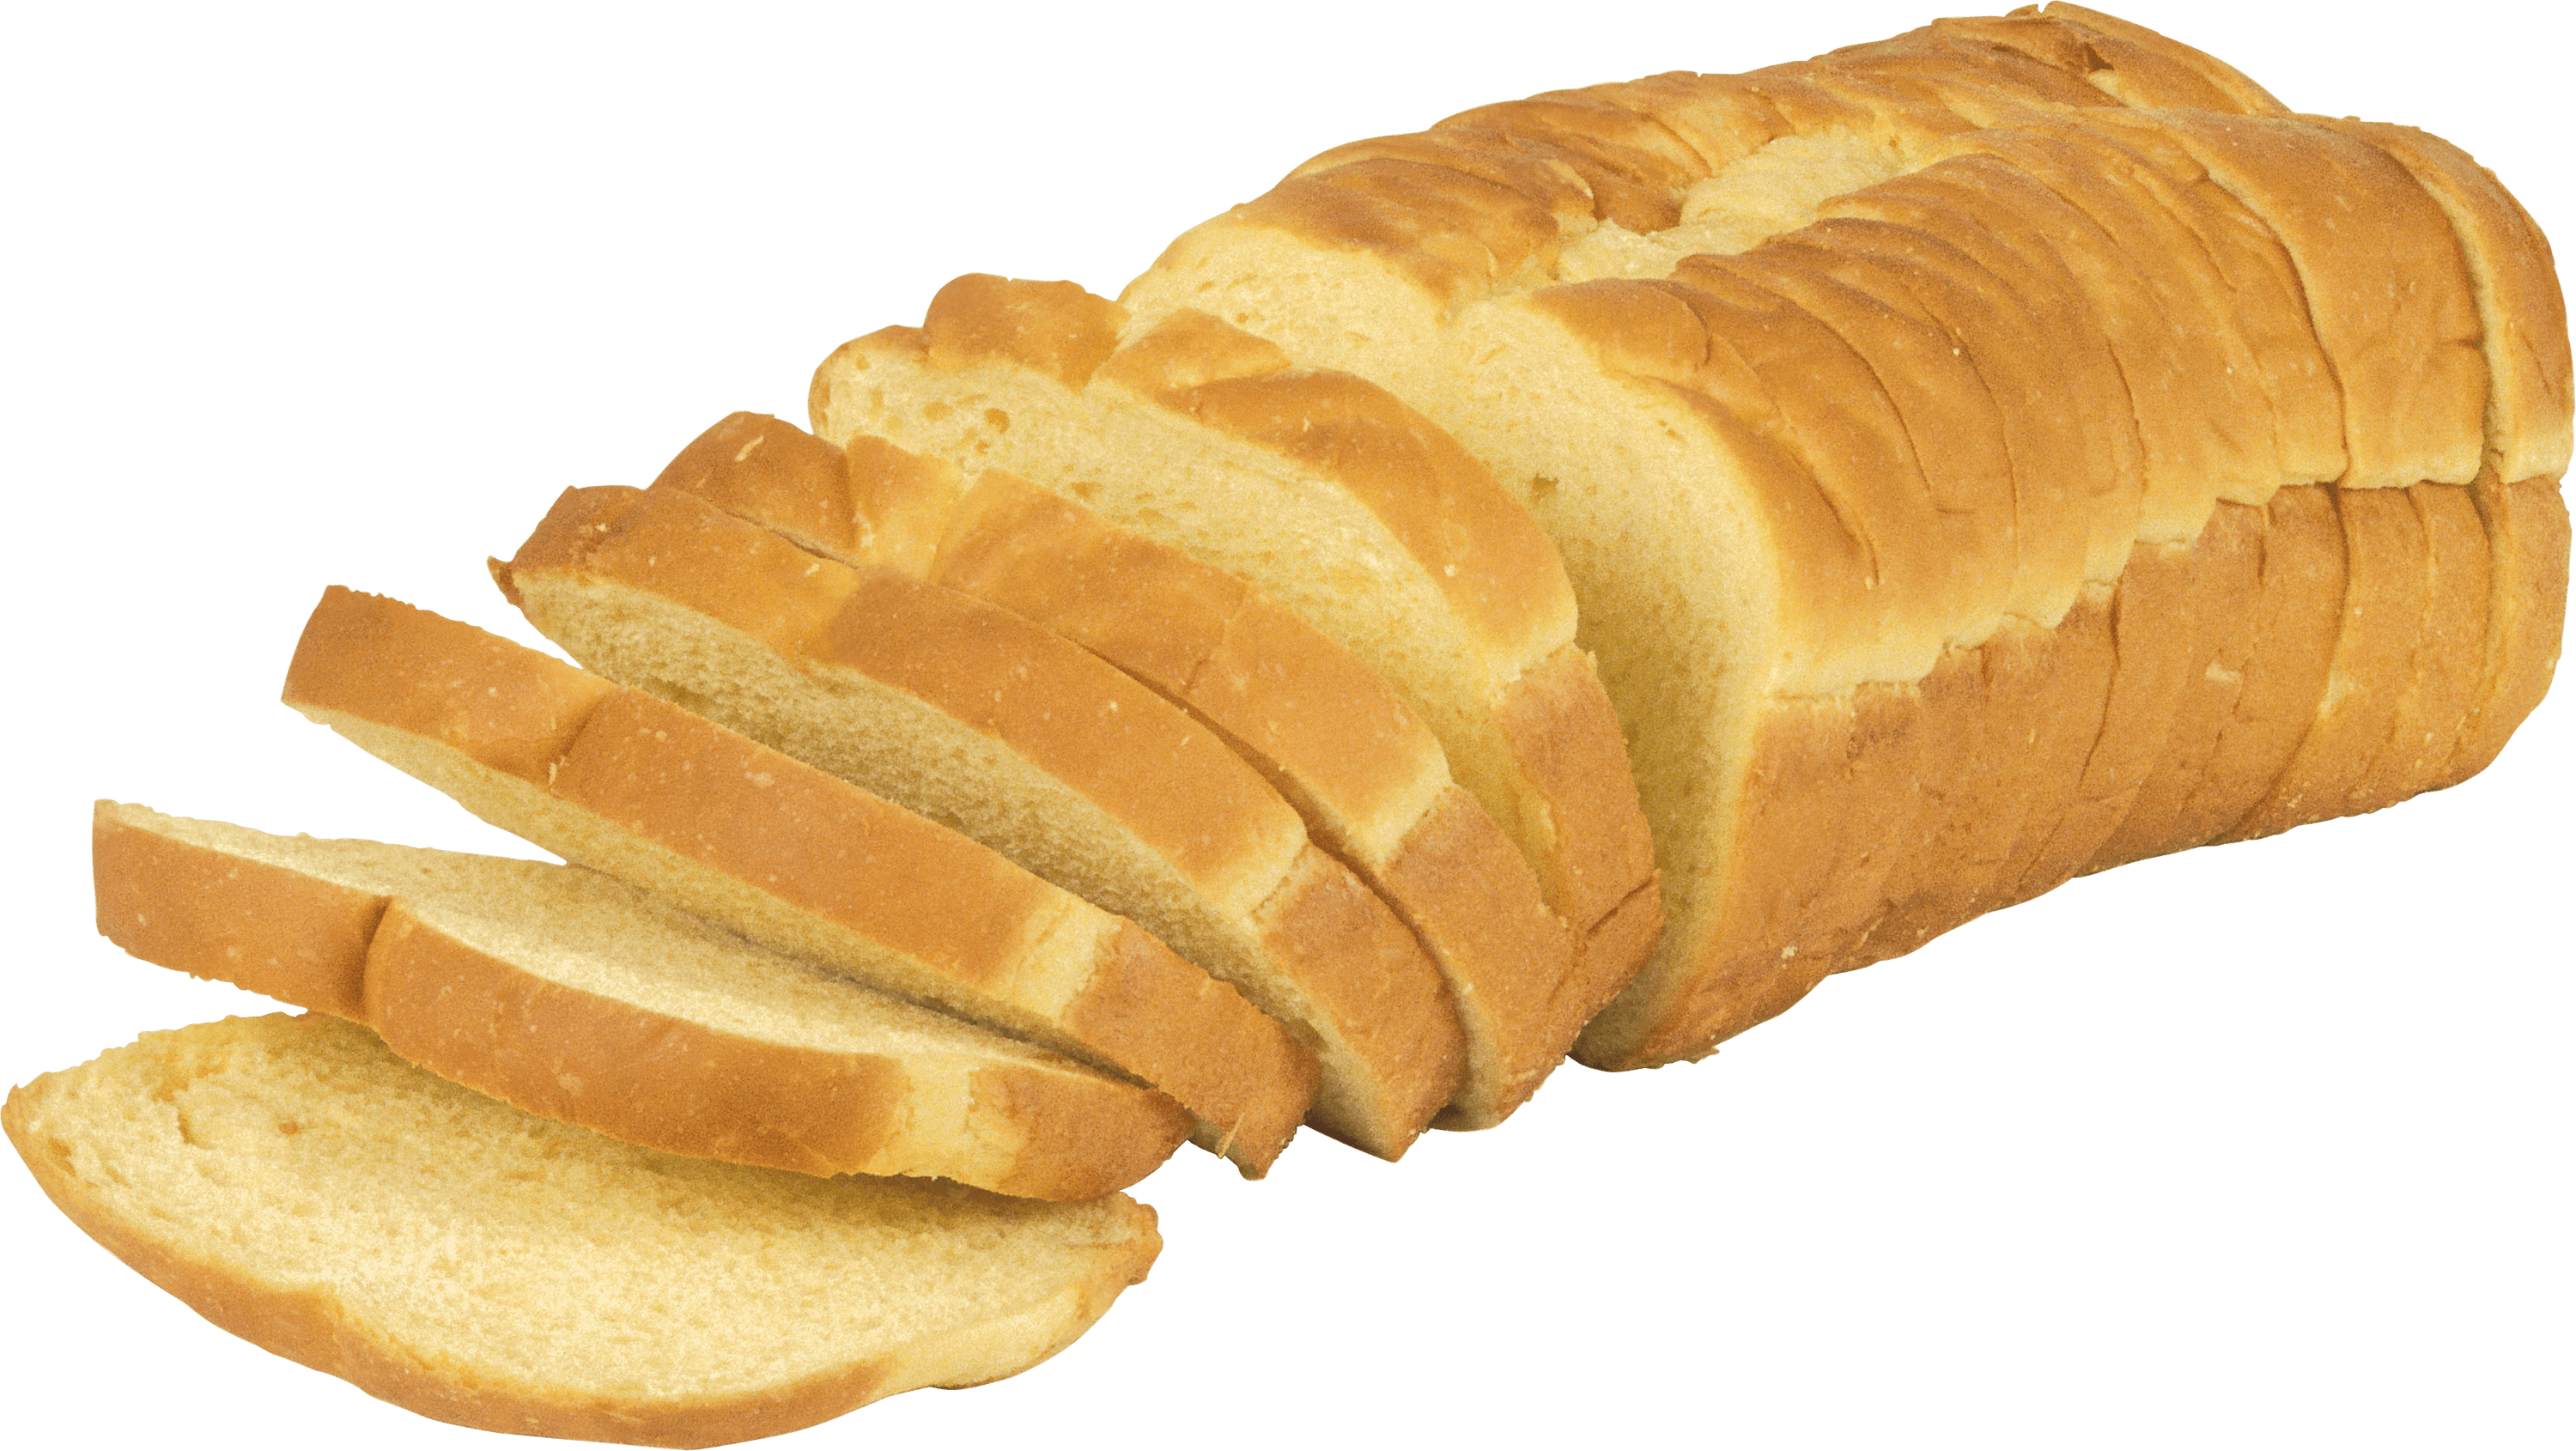 Sliced Bread Transparent Png Stickpng Discover and download free bread png images on pngitem. stickpng